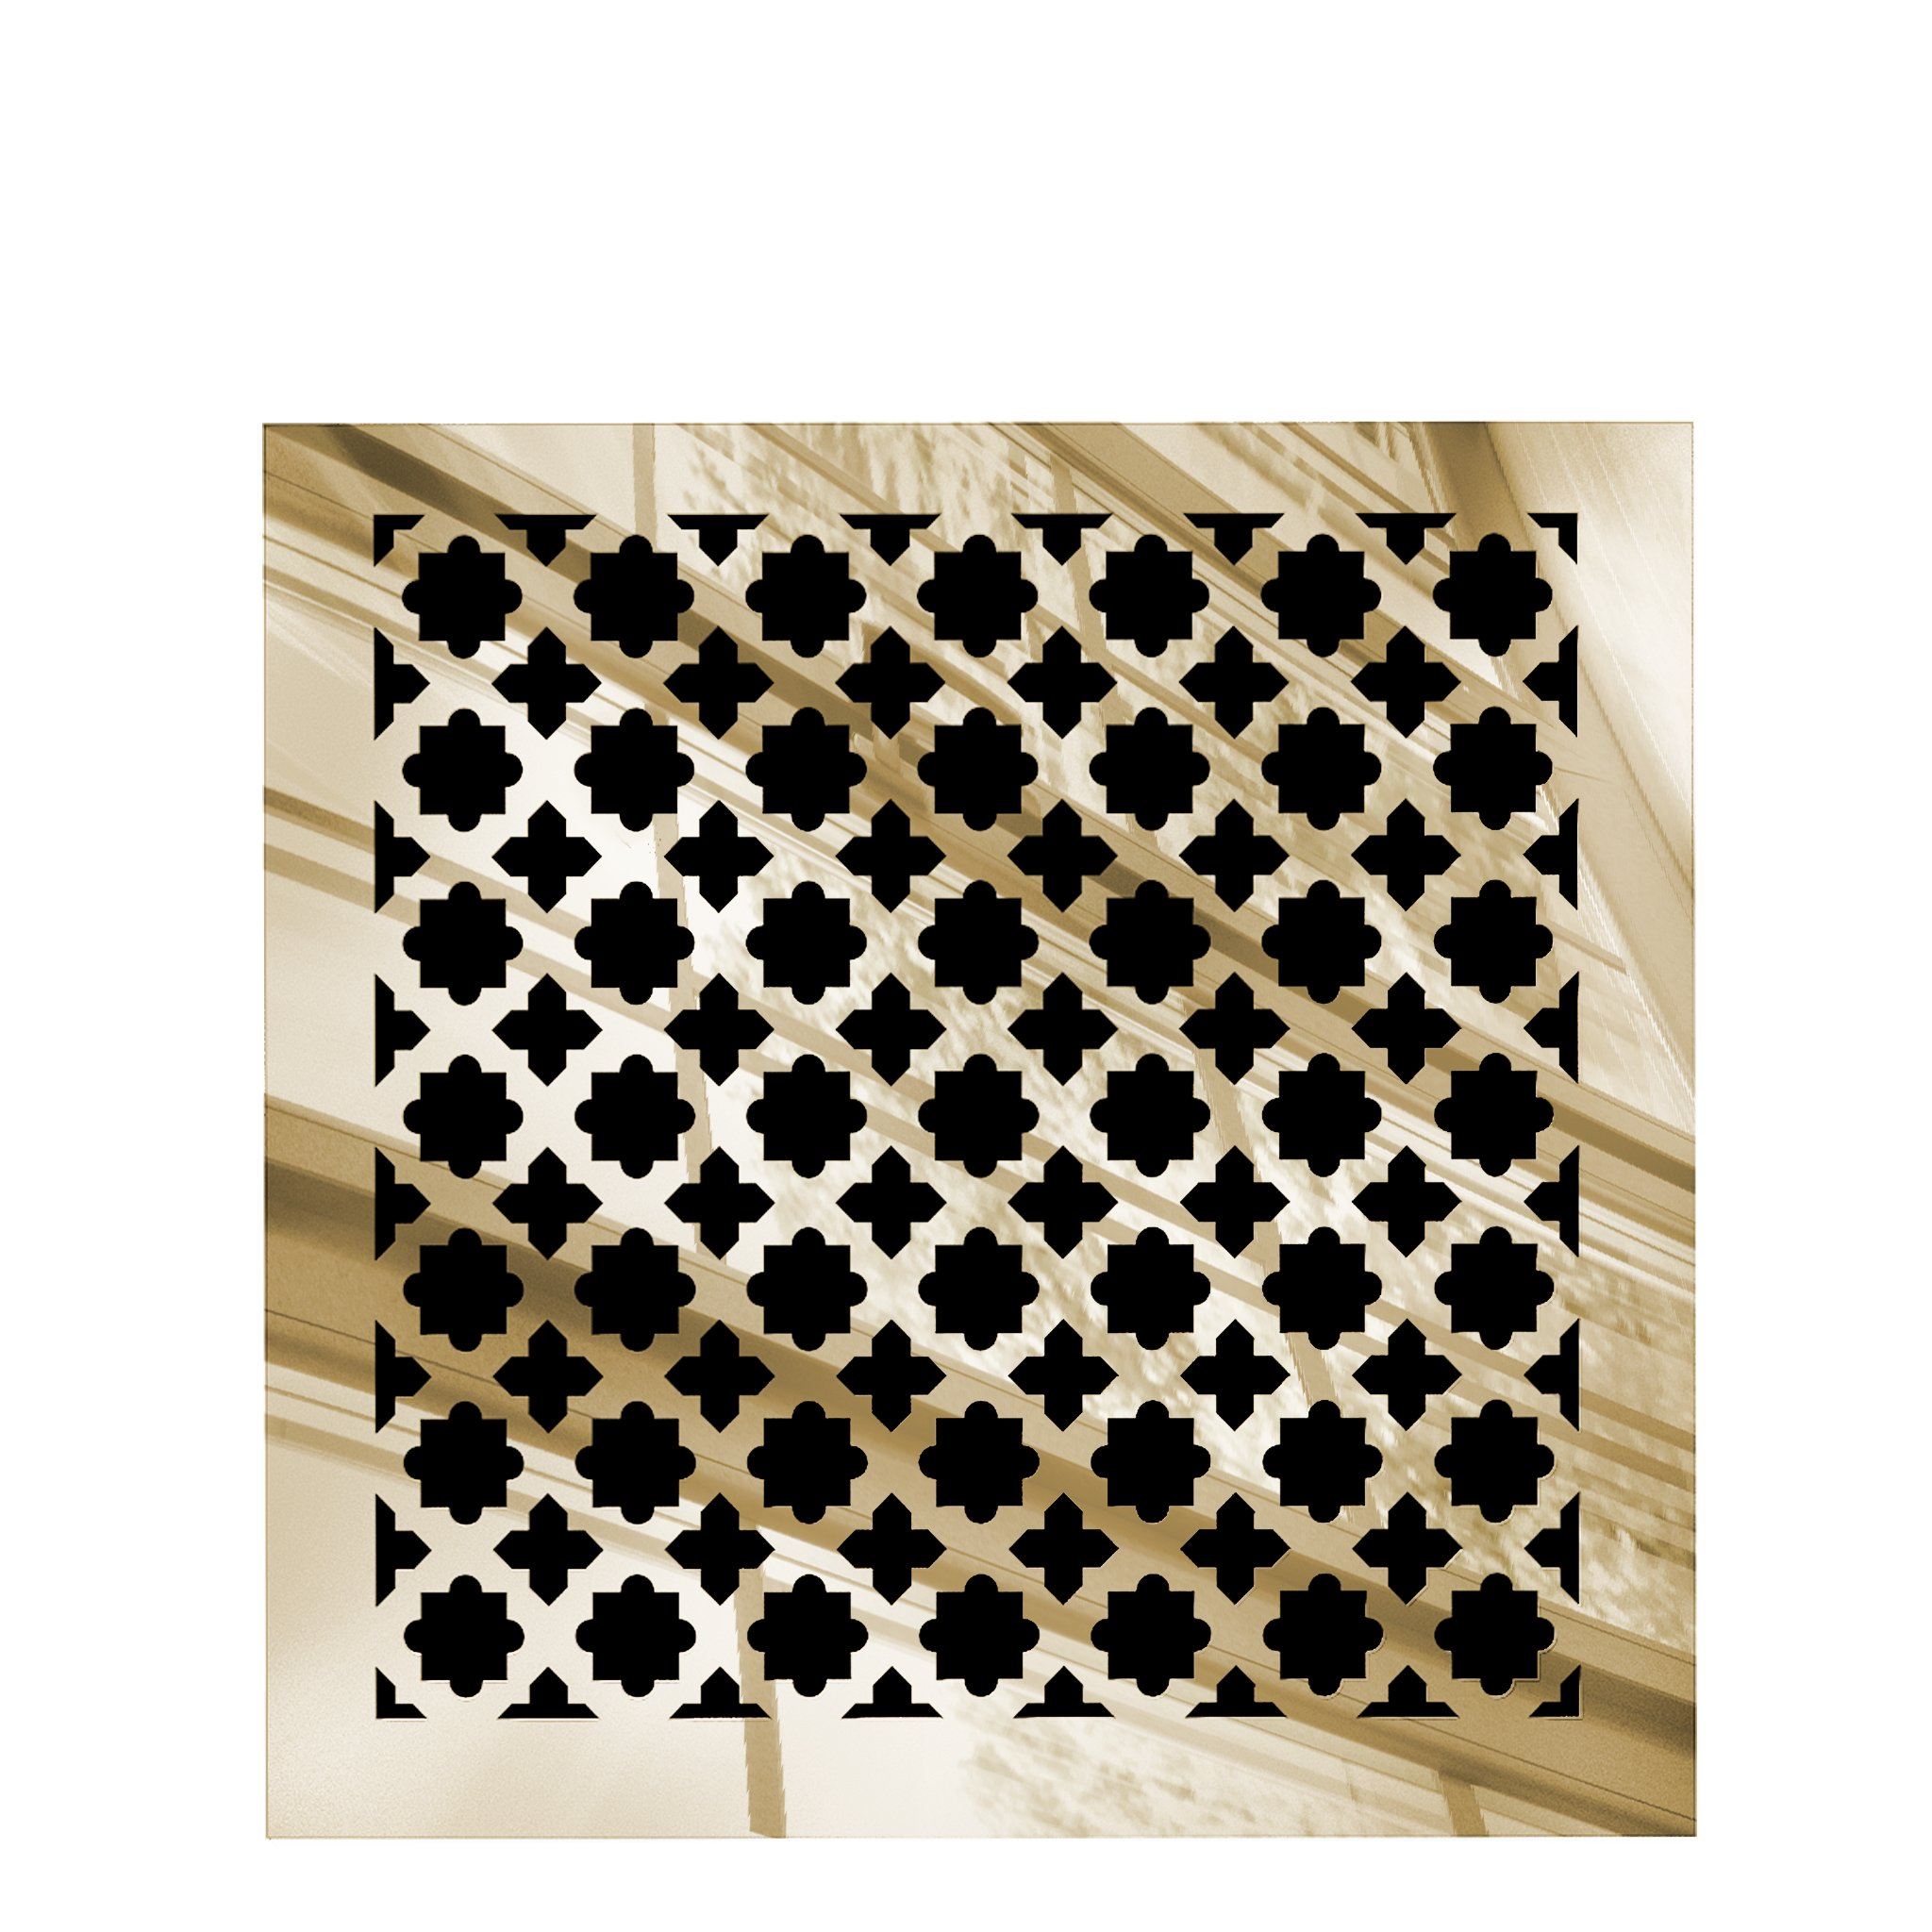 Saba Air Vent Cover Grille - Acrylic Fiberglass 8 x 8 Duct Opening (10'' x 10'' Overall) Gold Mirror Finish Return Register Covers for Walls and Ceilings NOT for Floor USE, Venetian